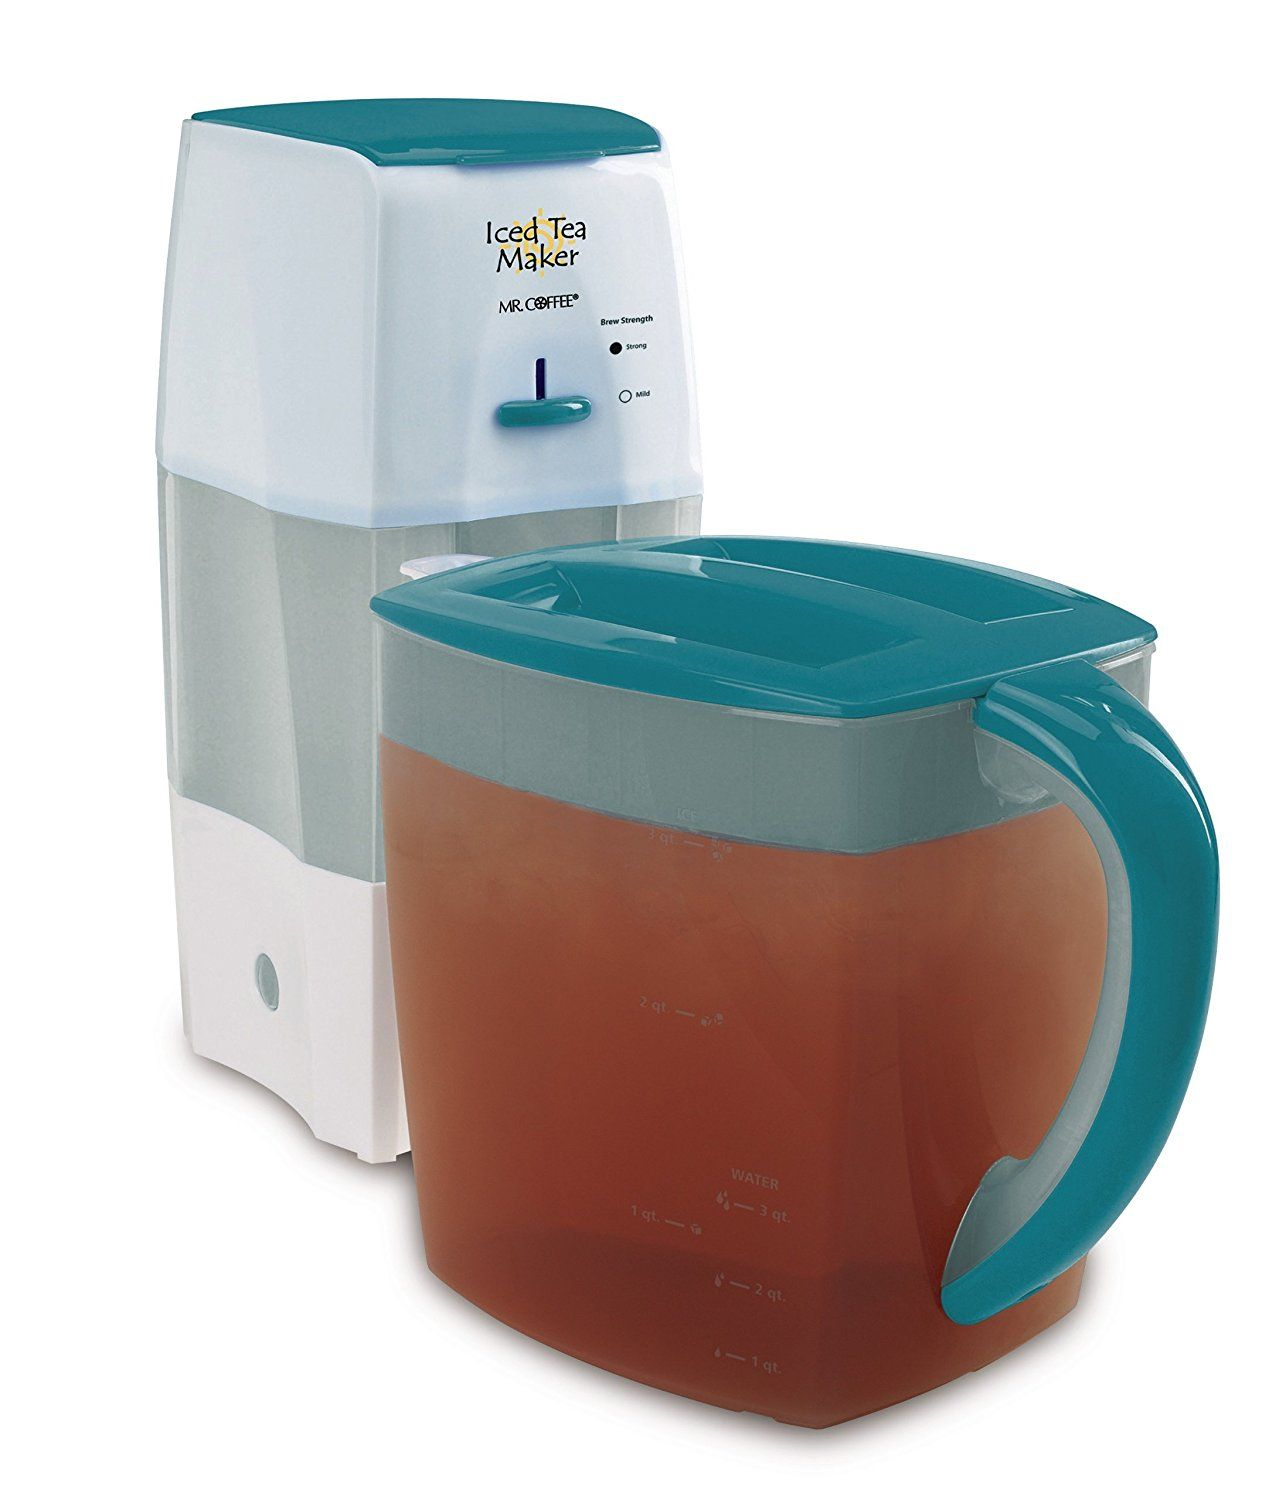 Mr. Coffee TM75TS Fresh Tea Iced Tea Maker, Teal * This is